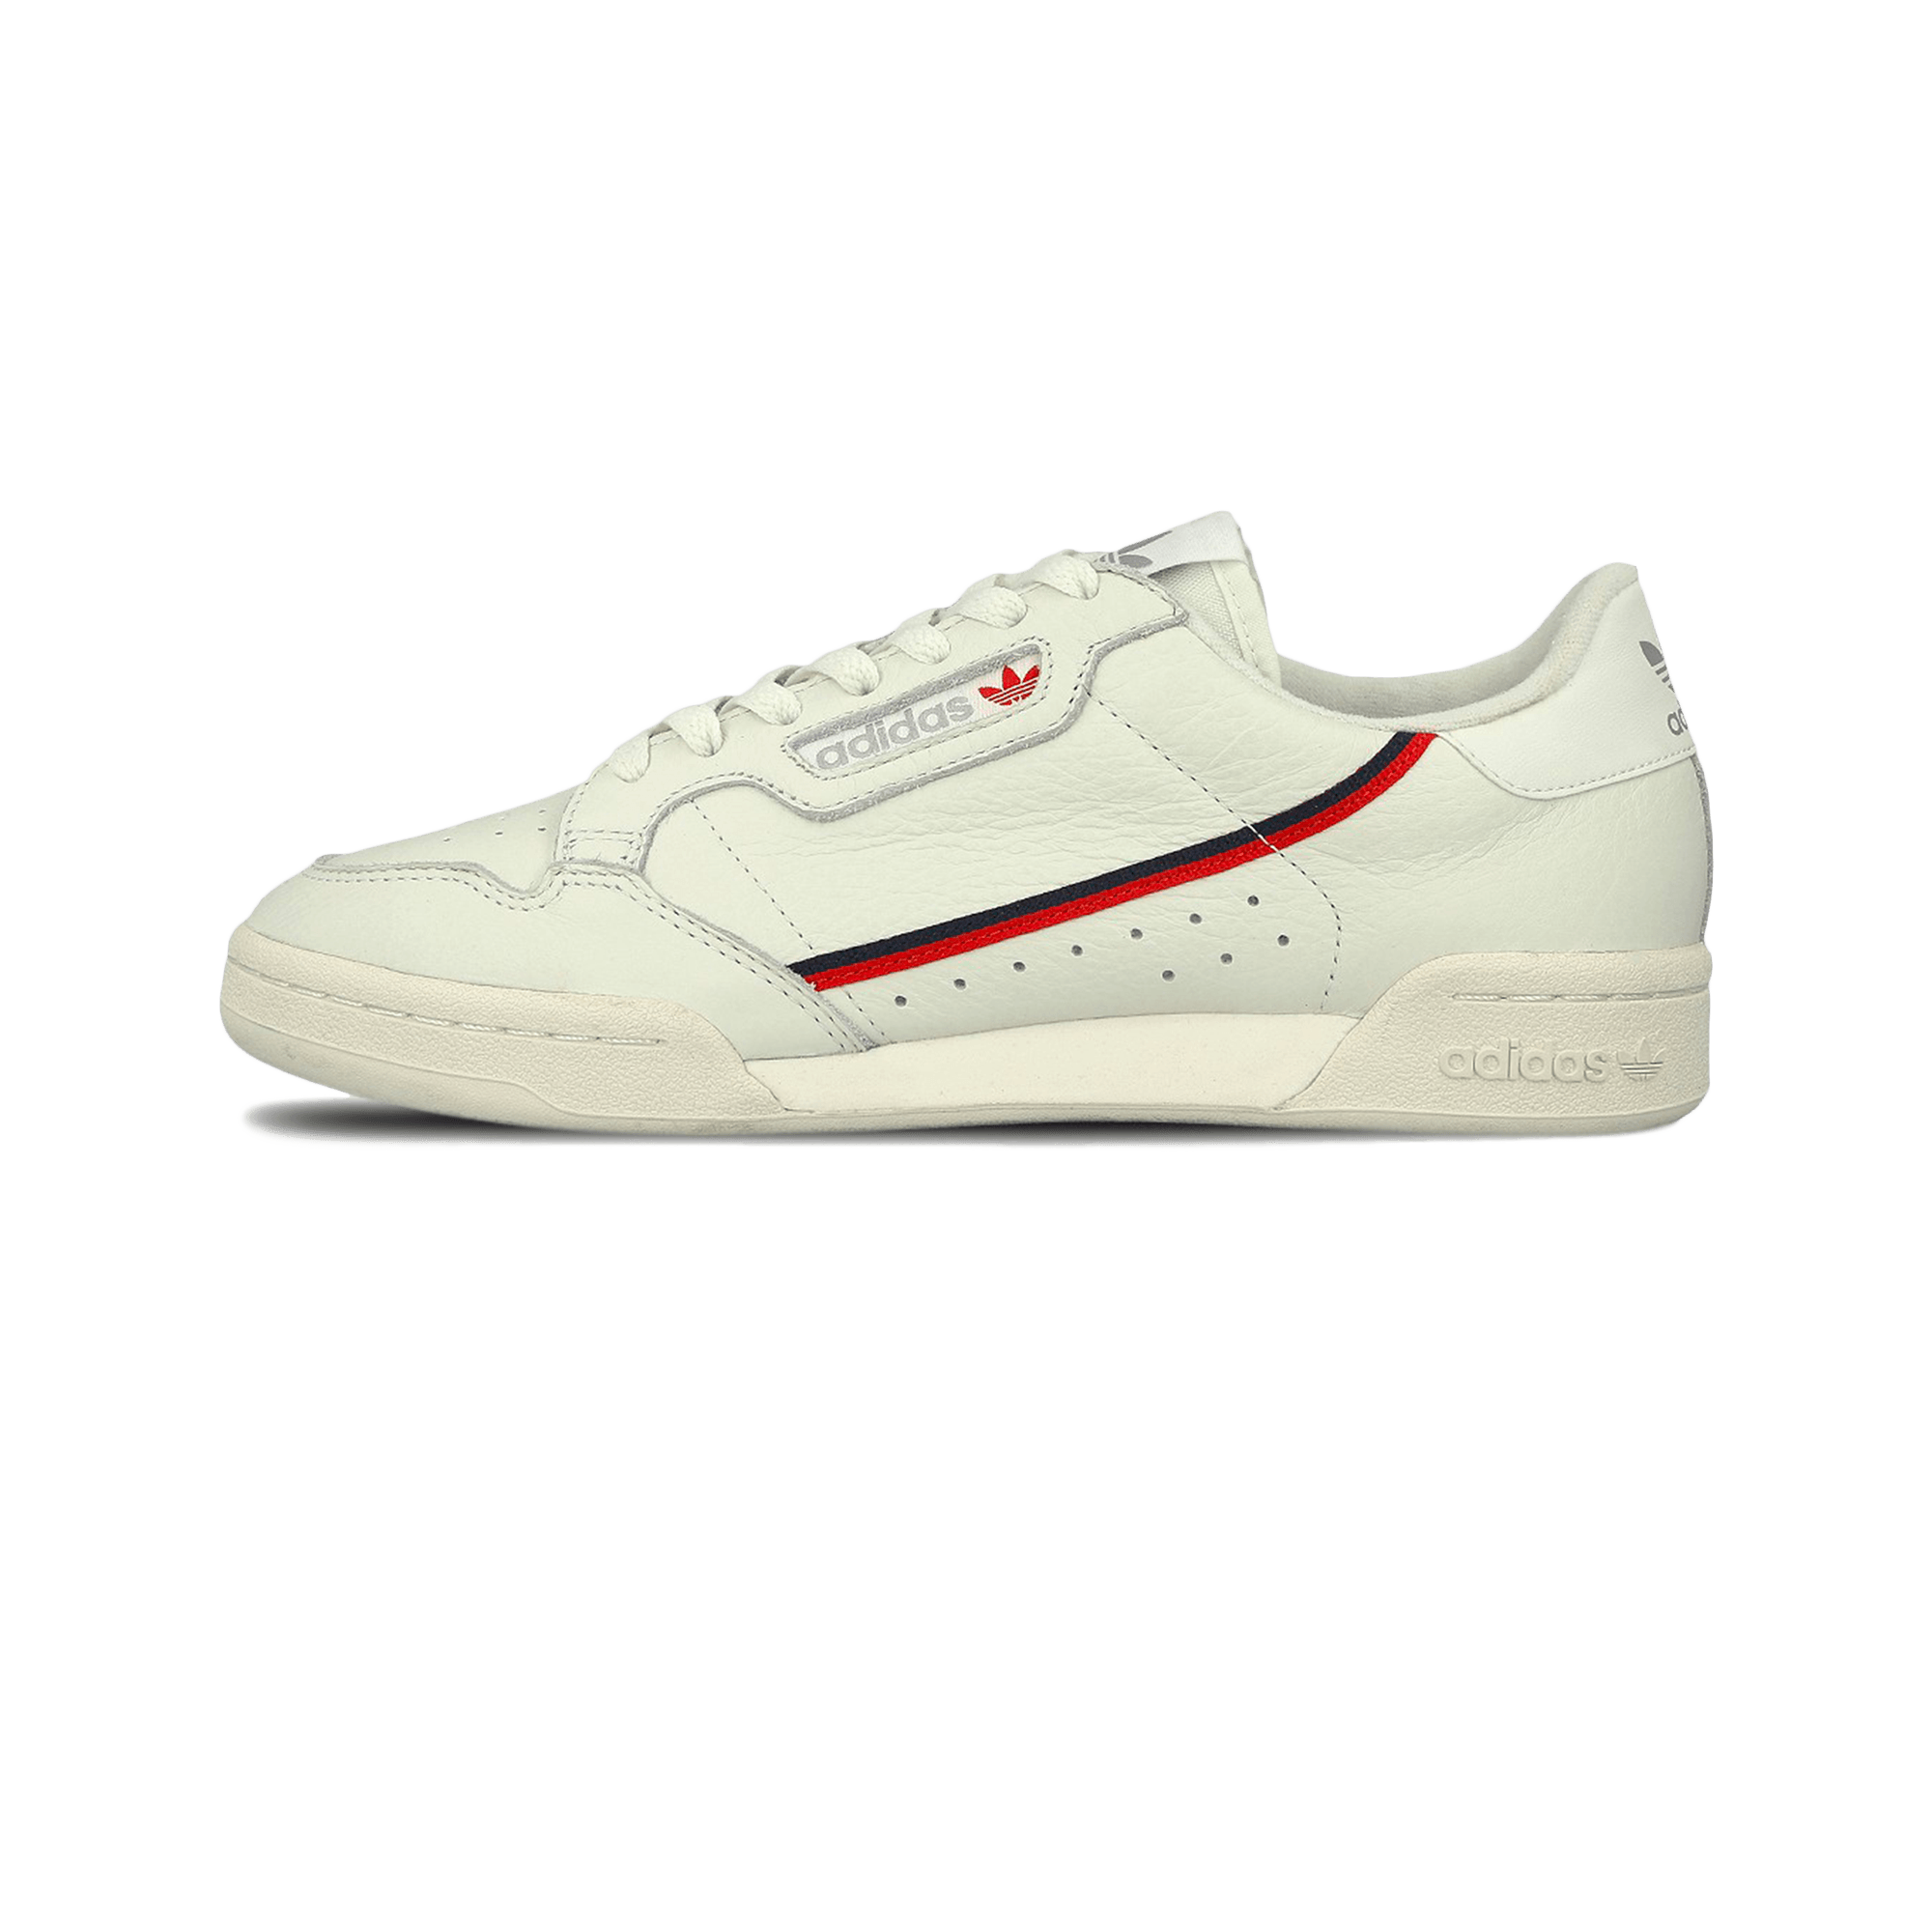 adidas Continental 80 beige / off white / scarlet - Men | Holypopstore.com